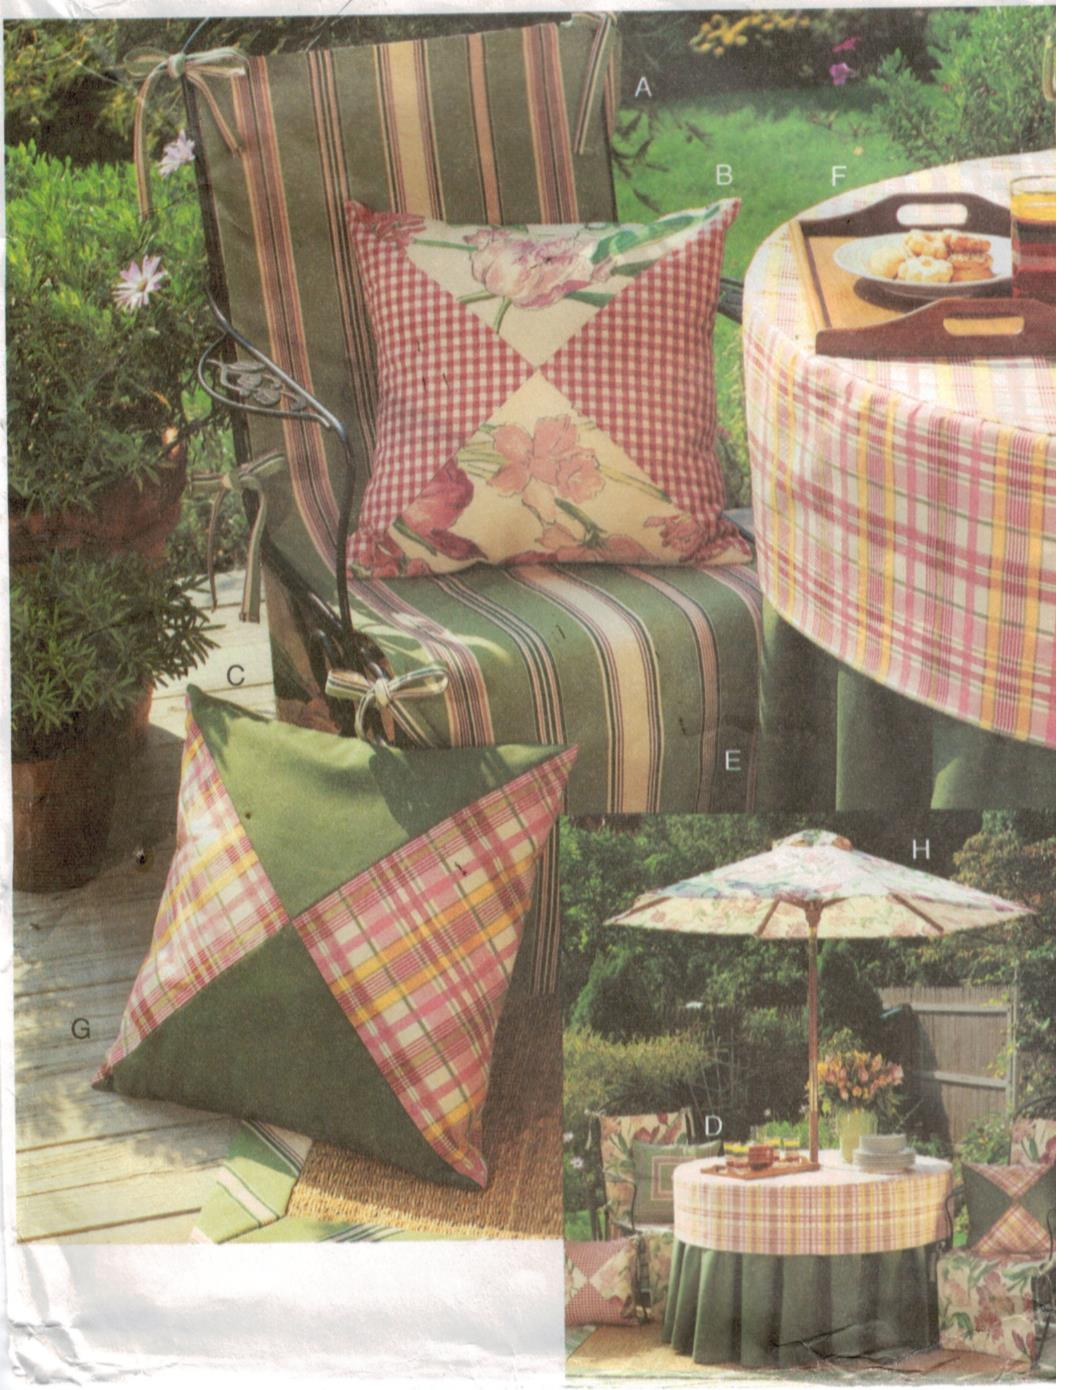 sewing patterns for patio chair cushions design made of wood vogue pattern 7732 set umbrella tablecloth pillows